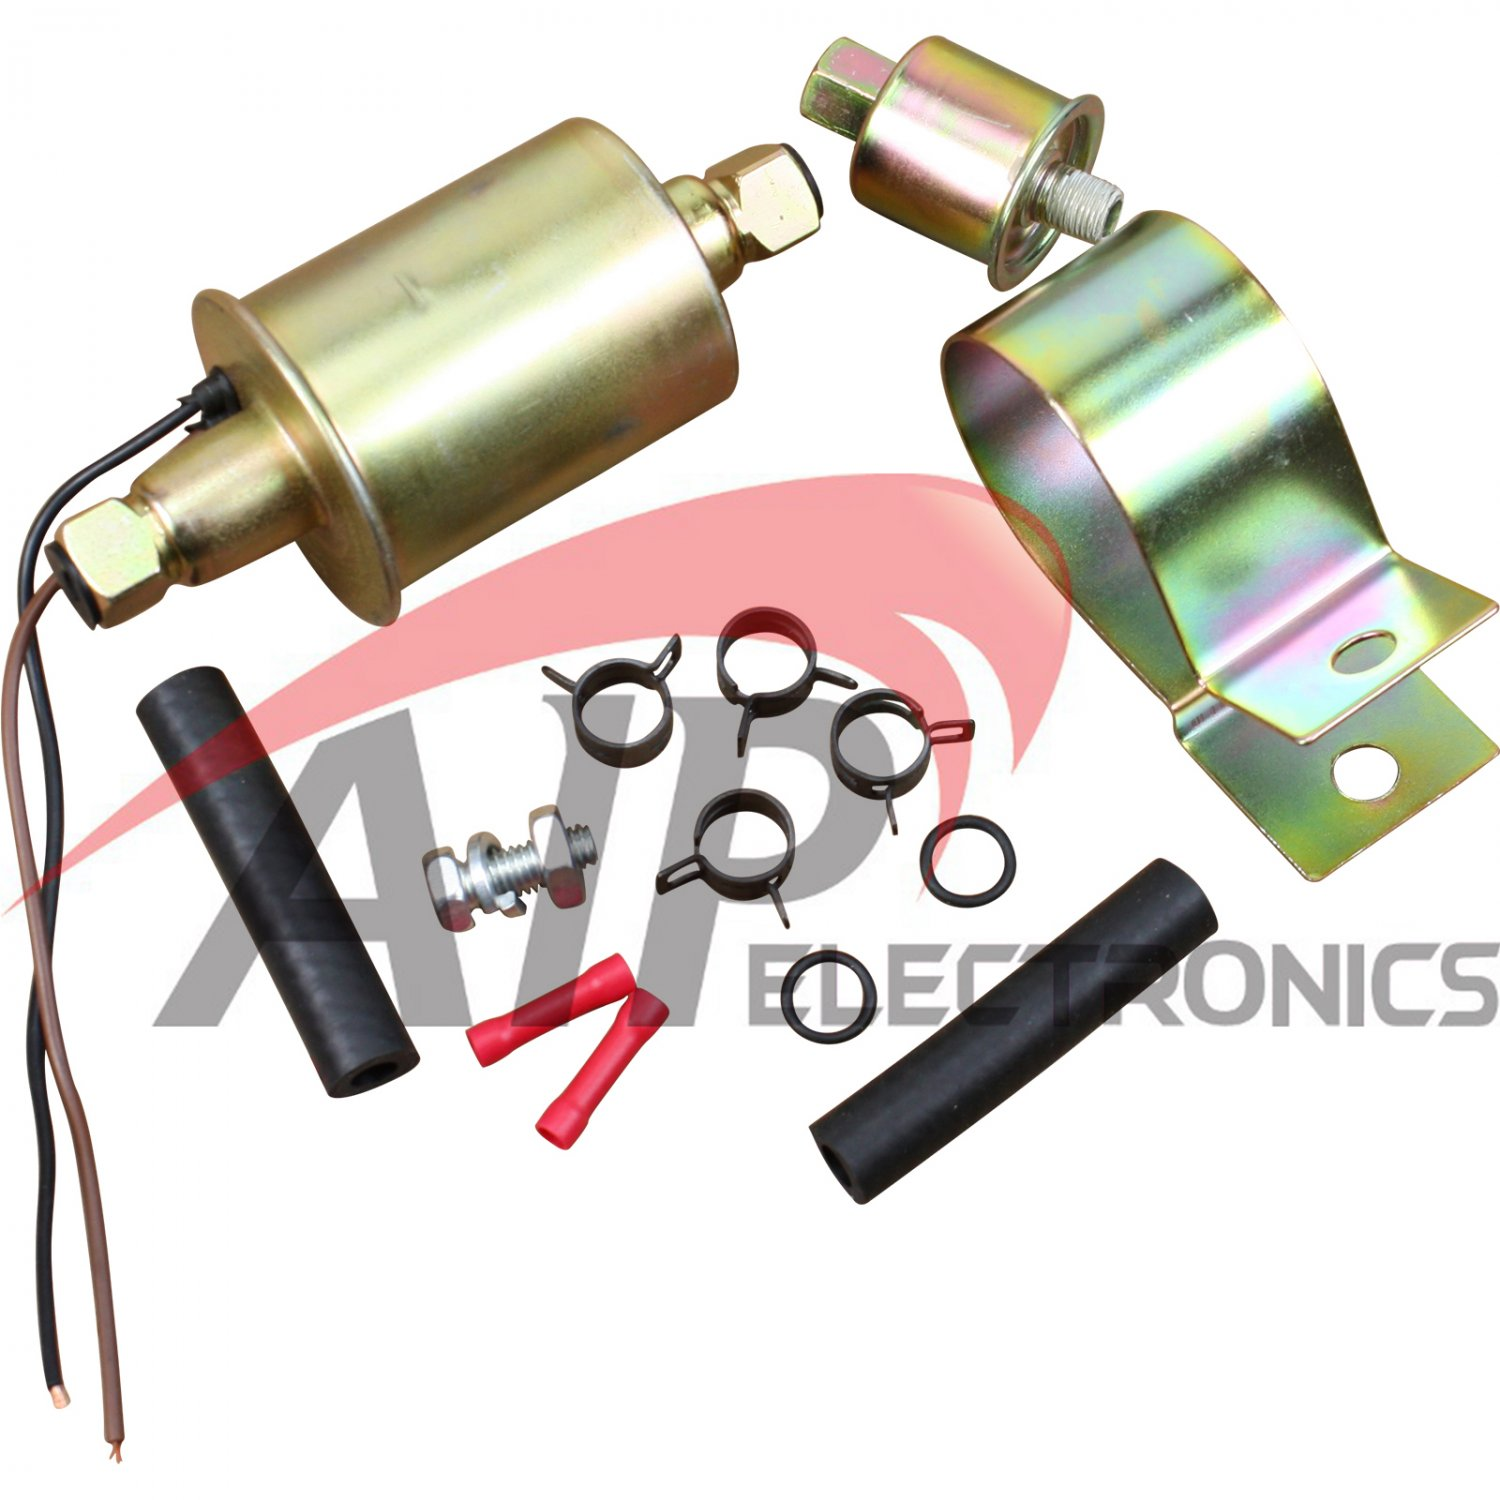 Brand New Universal 12v Electric Fuel Pump Installation kit E8016S E8012S Low Pressure Oem Fit FP128